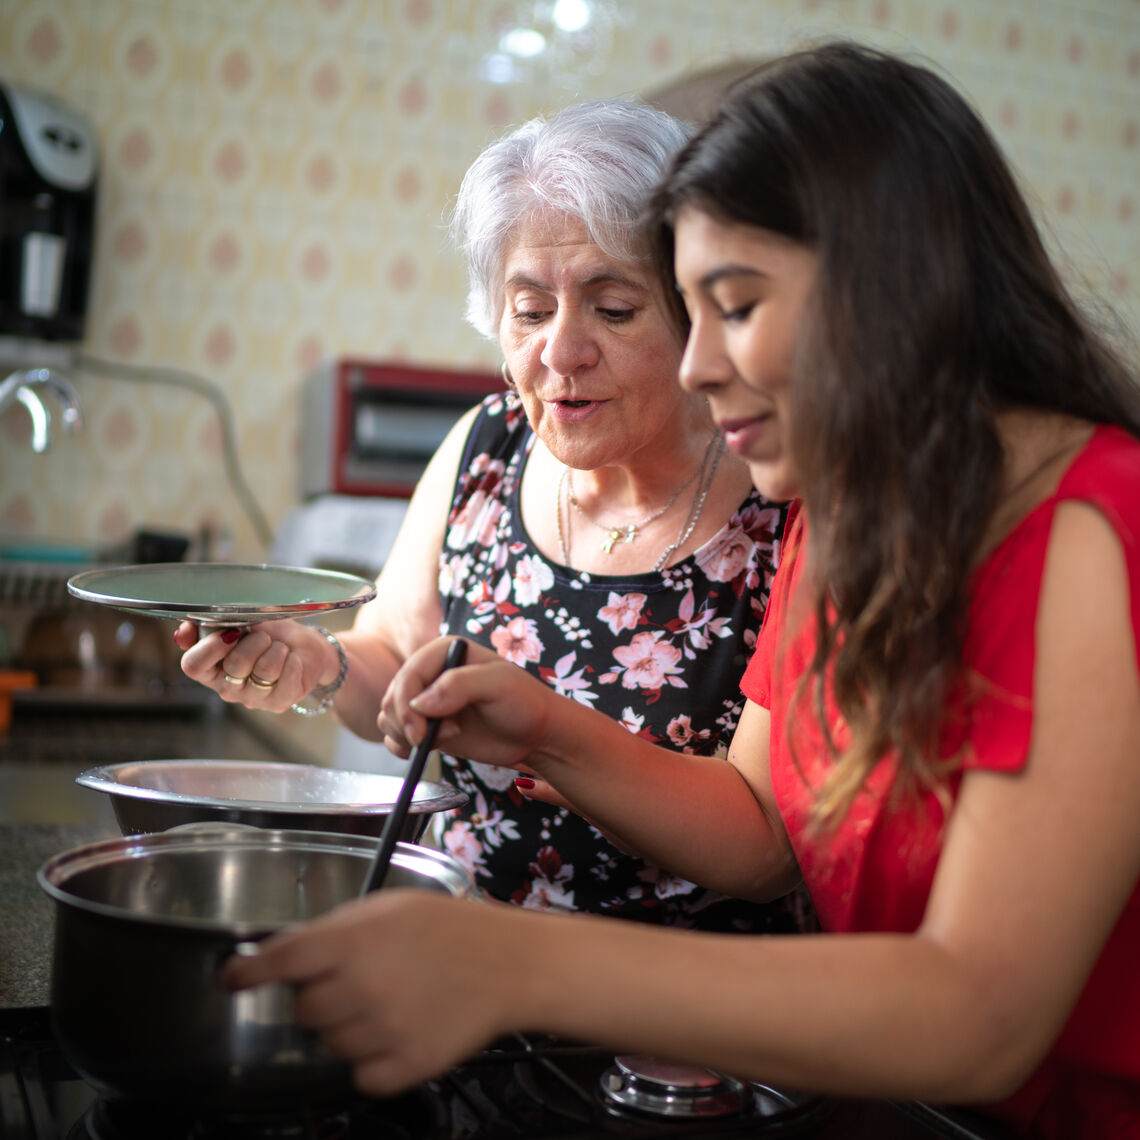 Mom and daughter cooking at stove